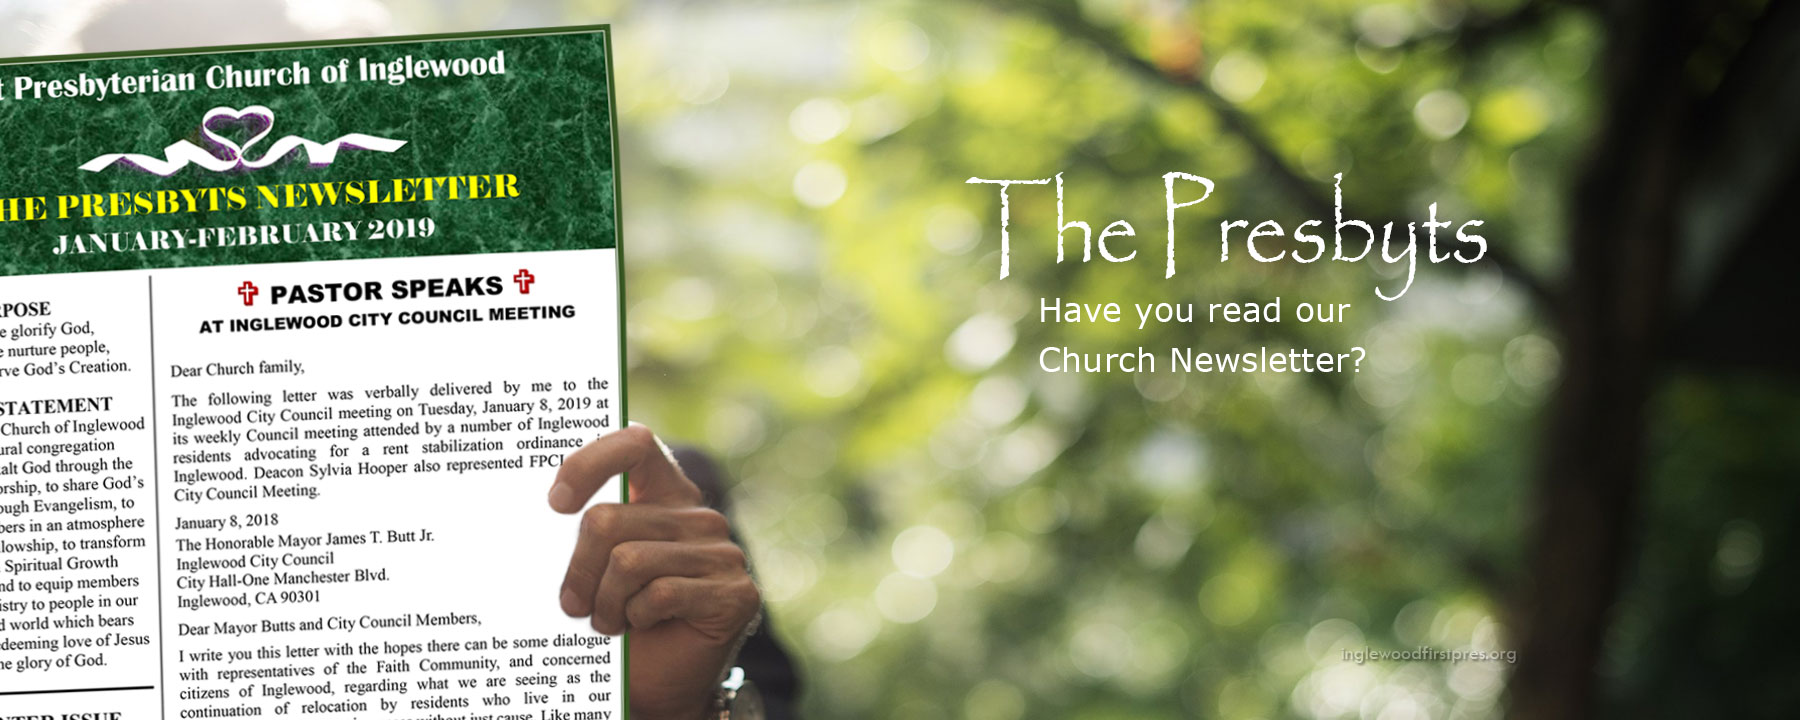 First Presbyterian Church of Inglewood Newsletter